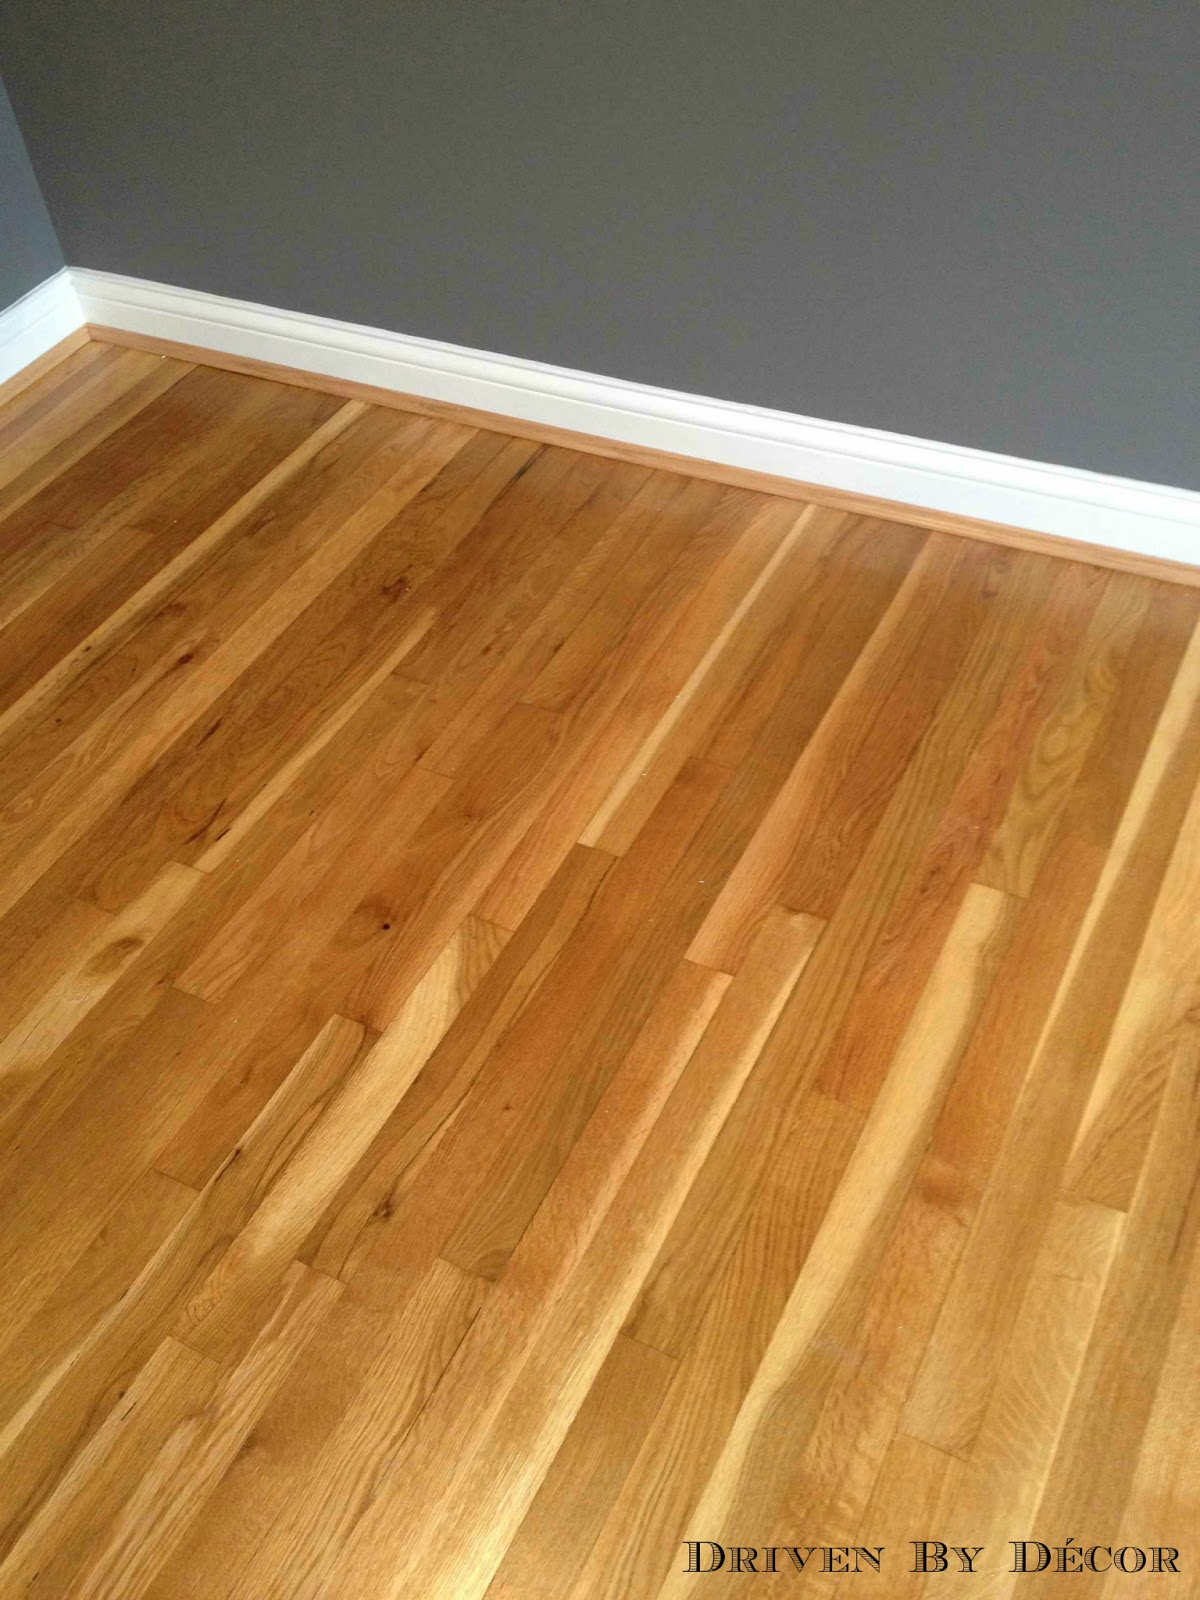 Hardwood floor colors flooring ideas home for Wood floor paint colors